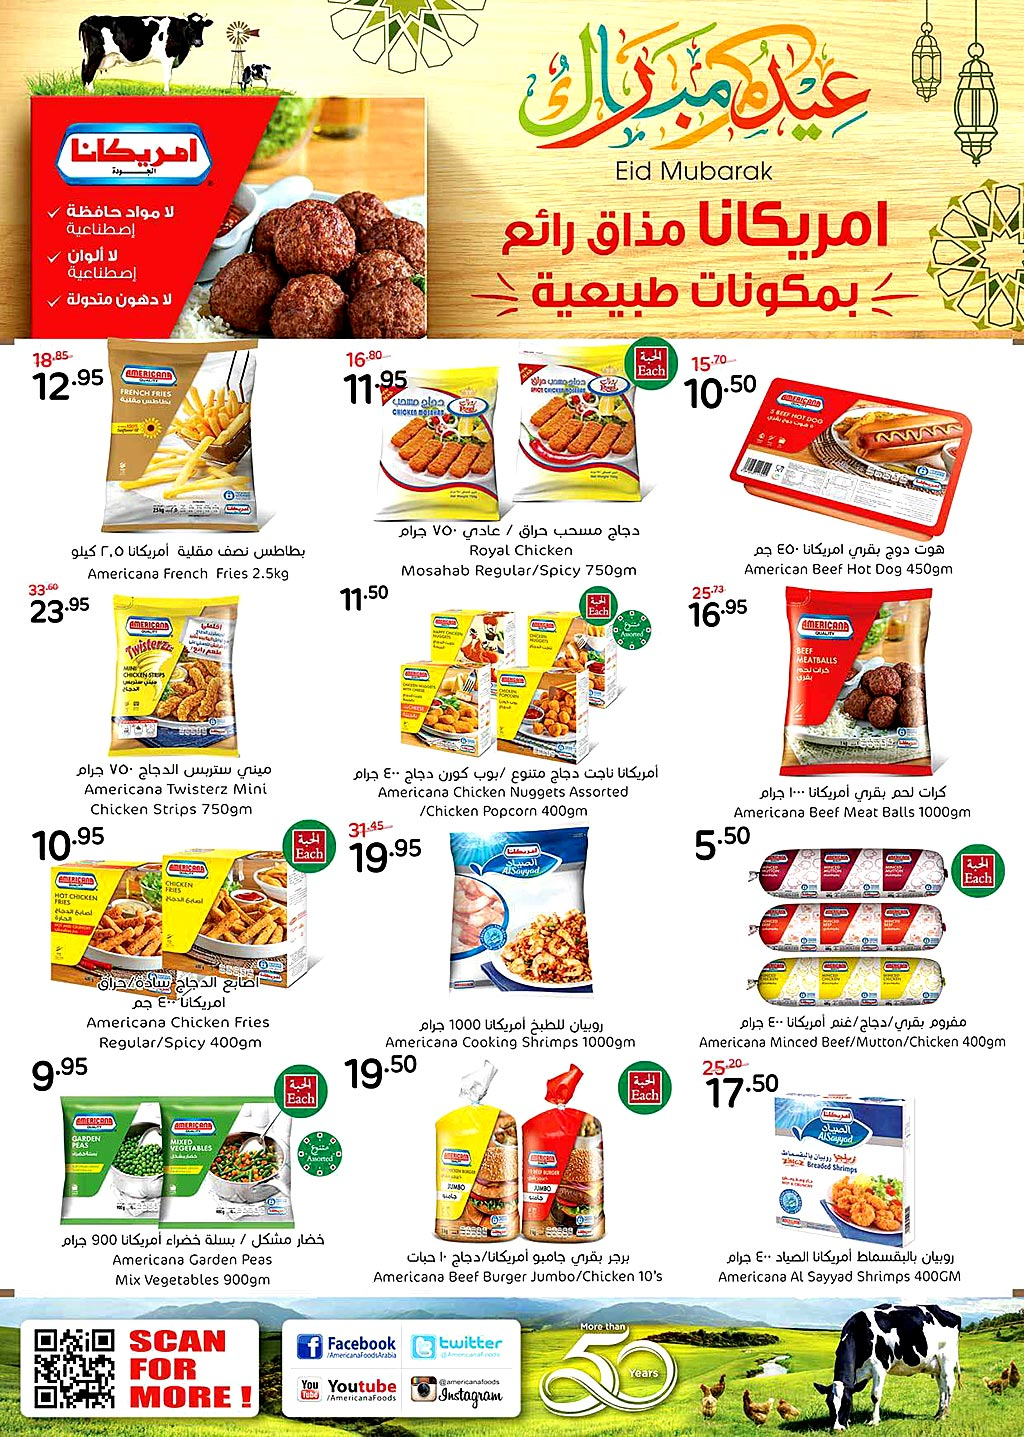 manuel-market offers from 29may to 10june 2019 page number 23 عروض مانويل ماركت من 29 مايو حتى 10 يونيو 2019 صفحة رقم 23